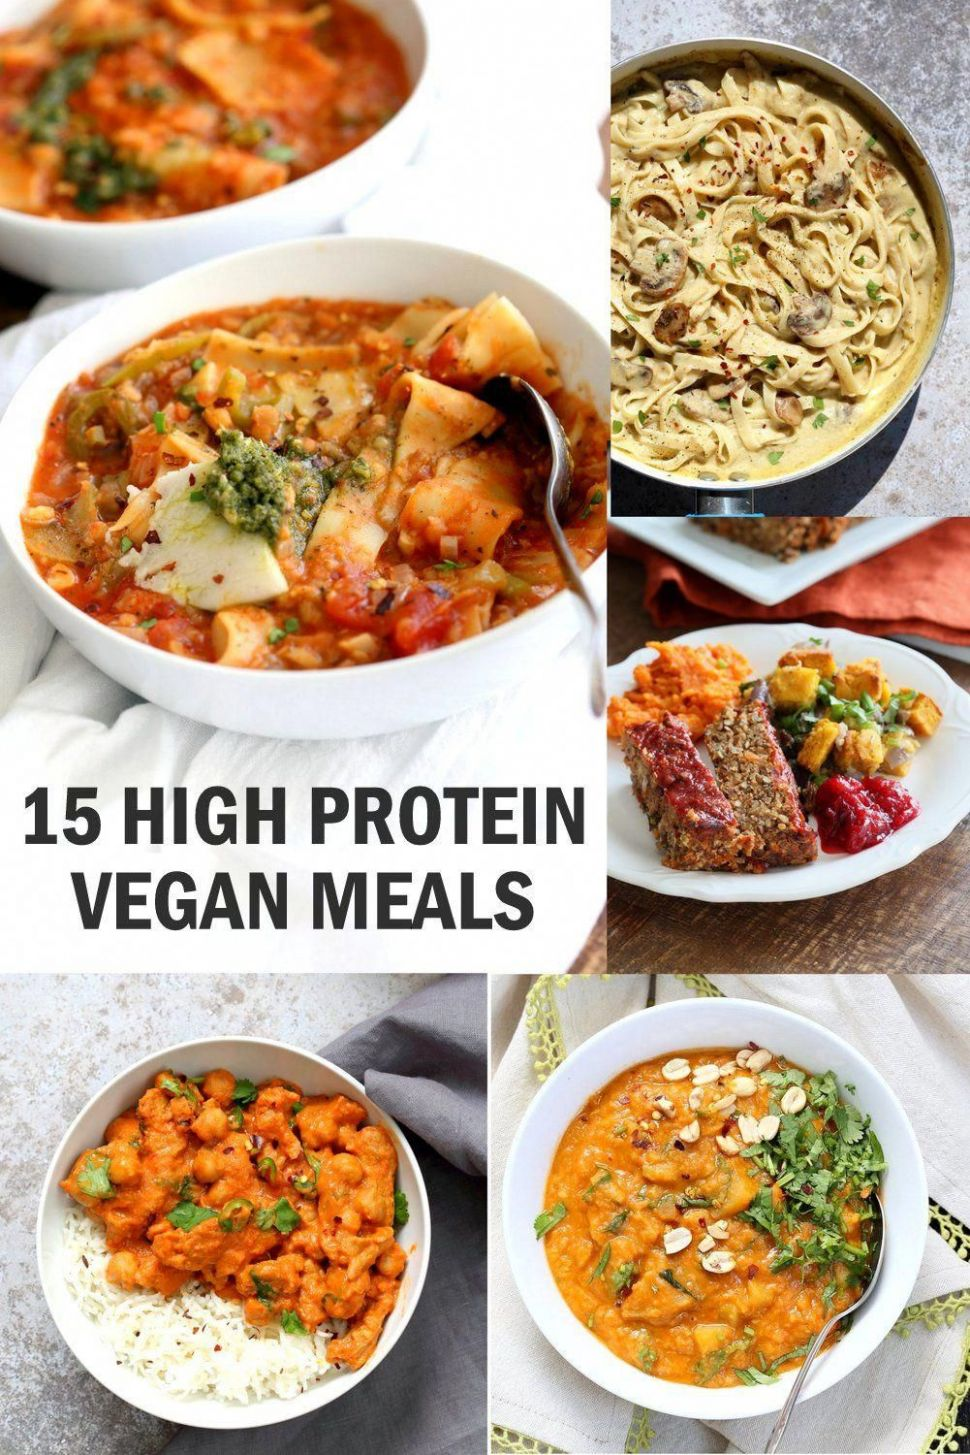 Good Veggie Dishes | Home Cooked Vegetarian Meals | Homemade ..